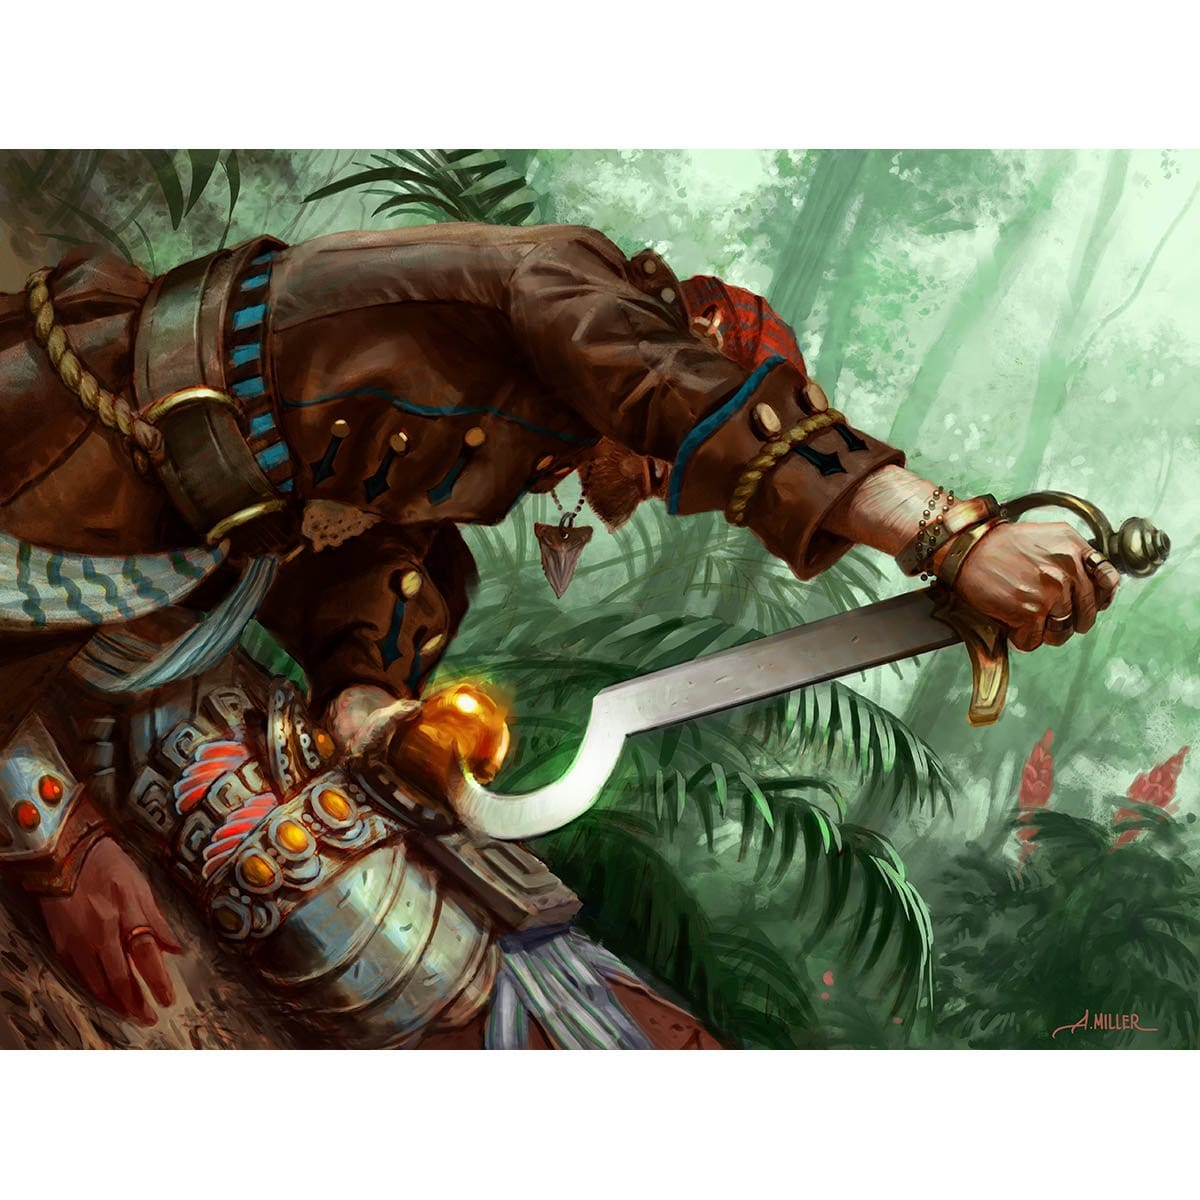 Prying Blade Print - Print - Original Magic Art - Accessories for Magic the Gathering and other card games